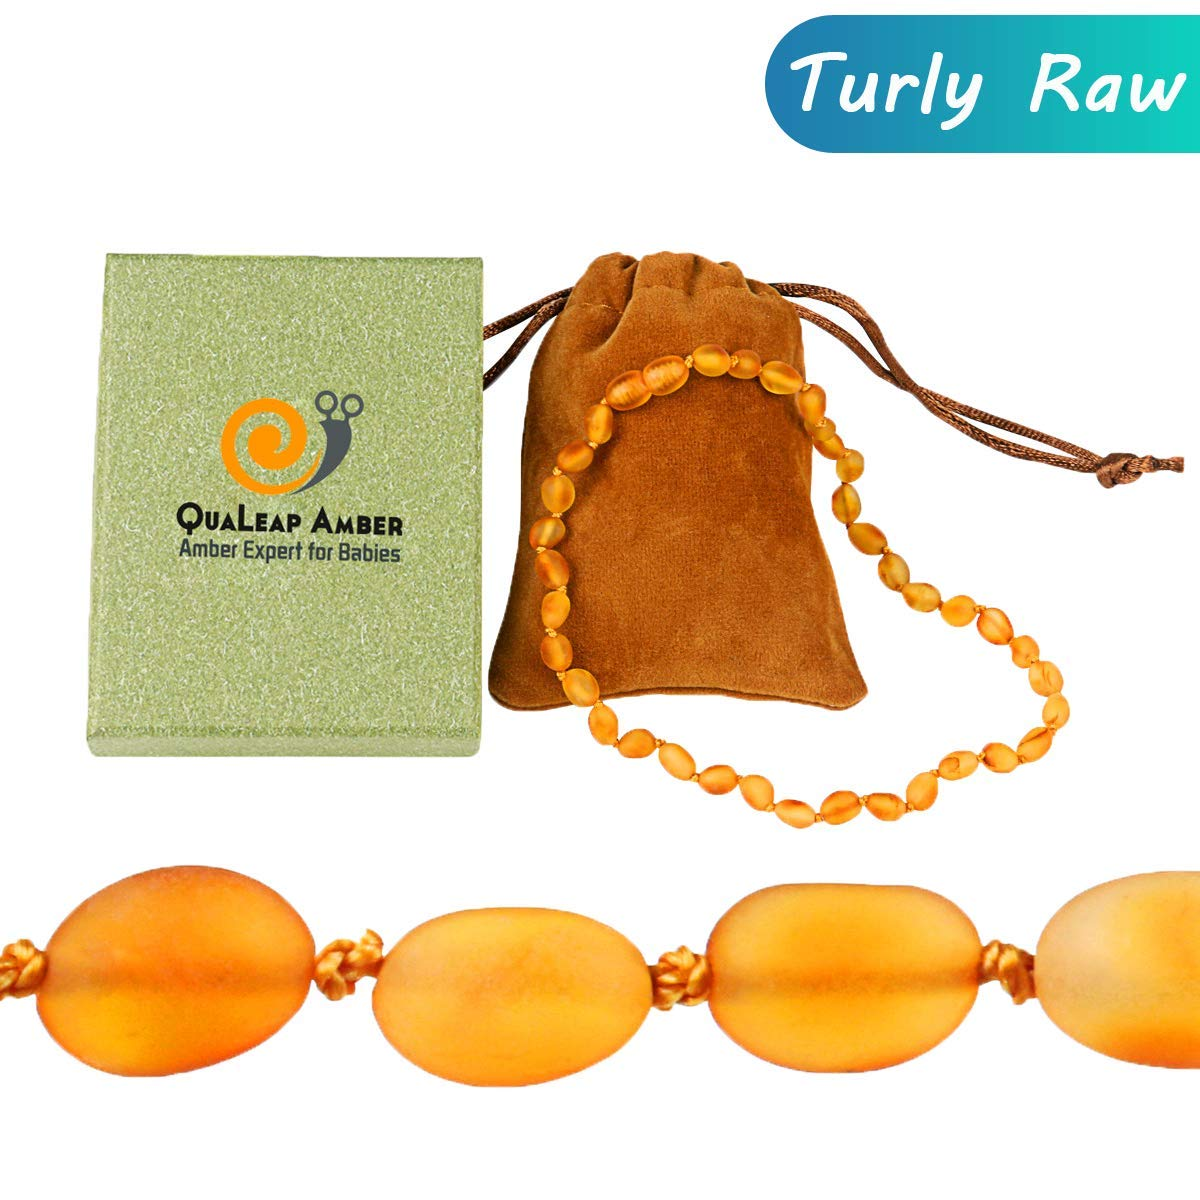 Premium Baltic Amber Teething Necklace for Baby (Unisex – Raw Multicolor – 12.5 Inches), 100% Authentic Baltic Amber Necklace Teething Set for Toddler & Infant – Natural Alternative to Teething Toys QuaLeap Amber